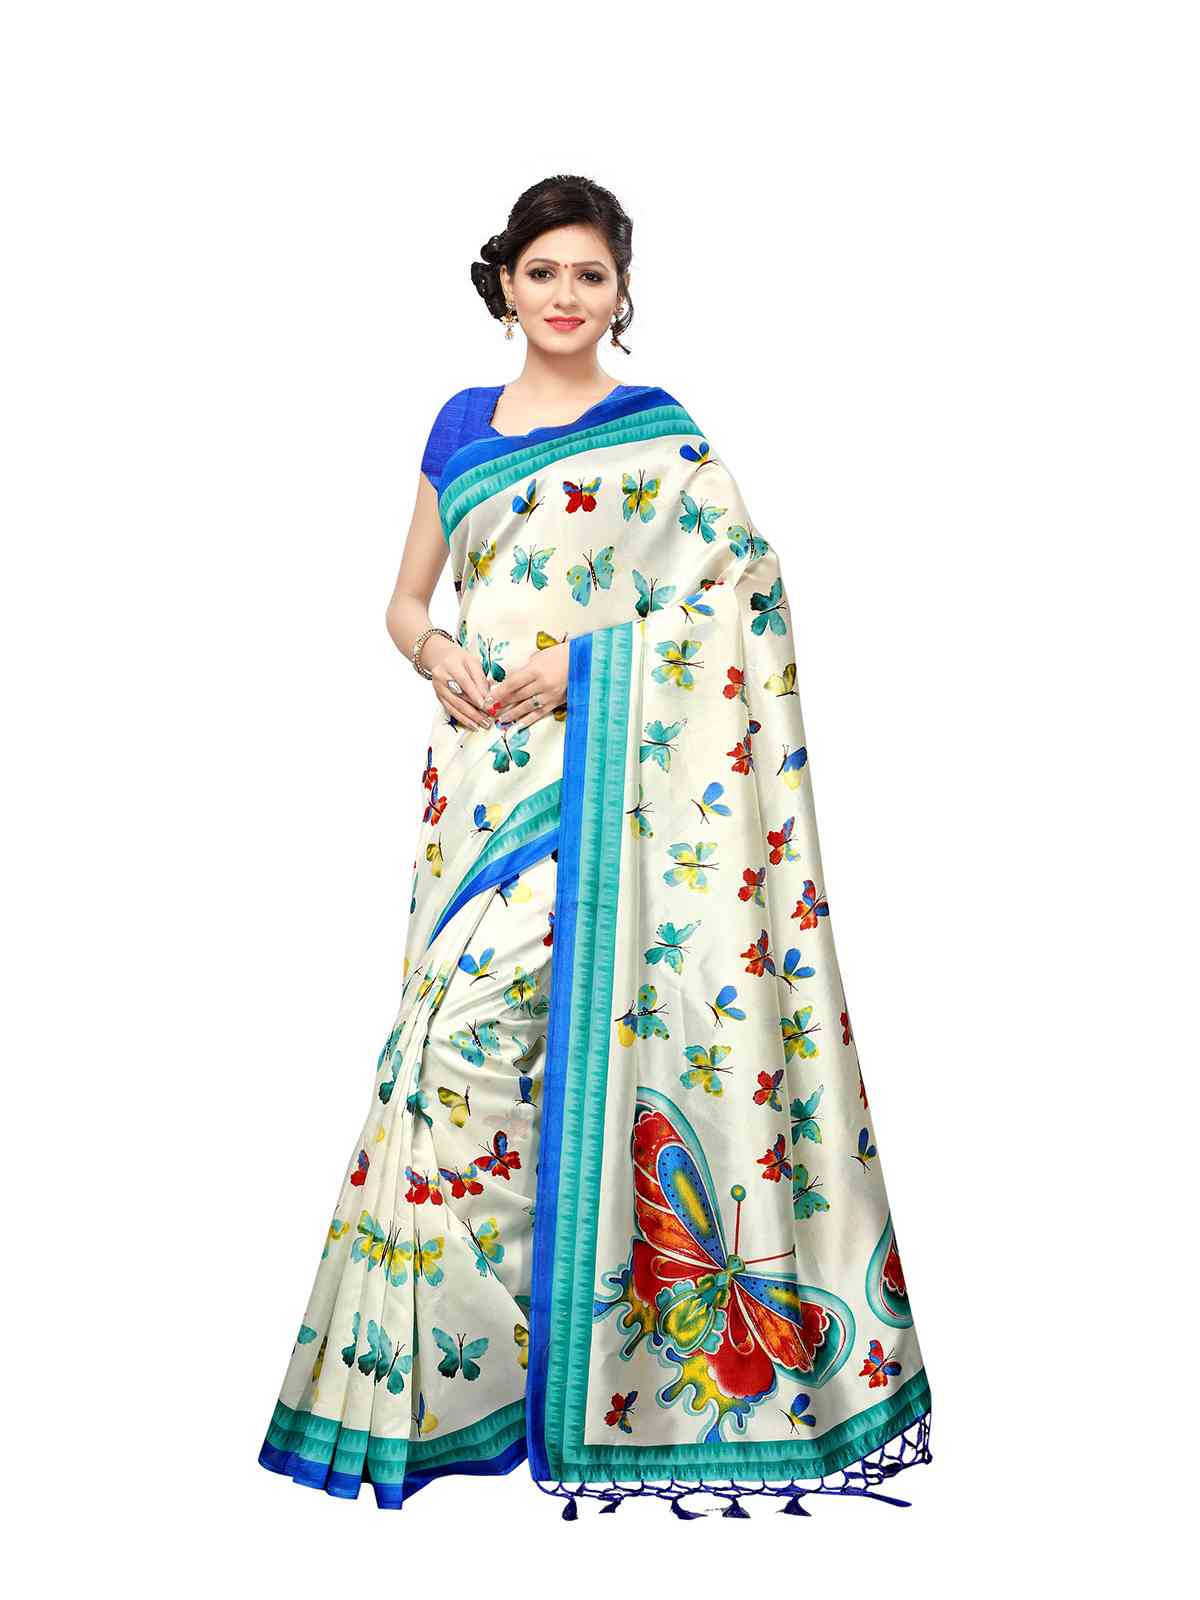 Khadi Silk Cream With Blue Color Printed Saree With Tassel Border